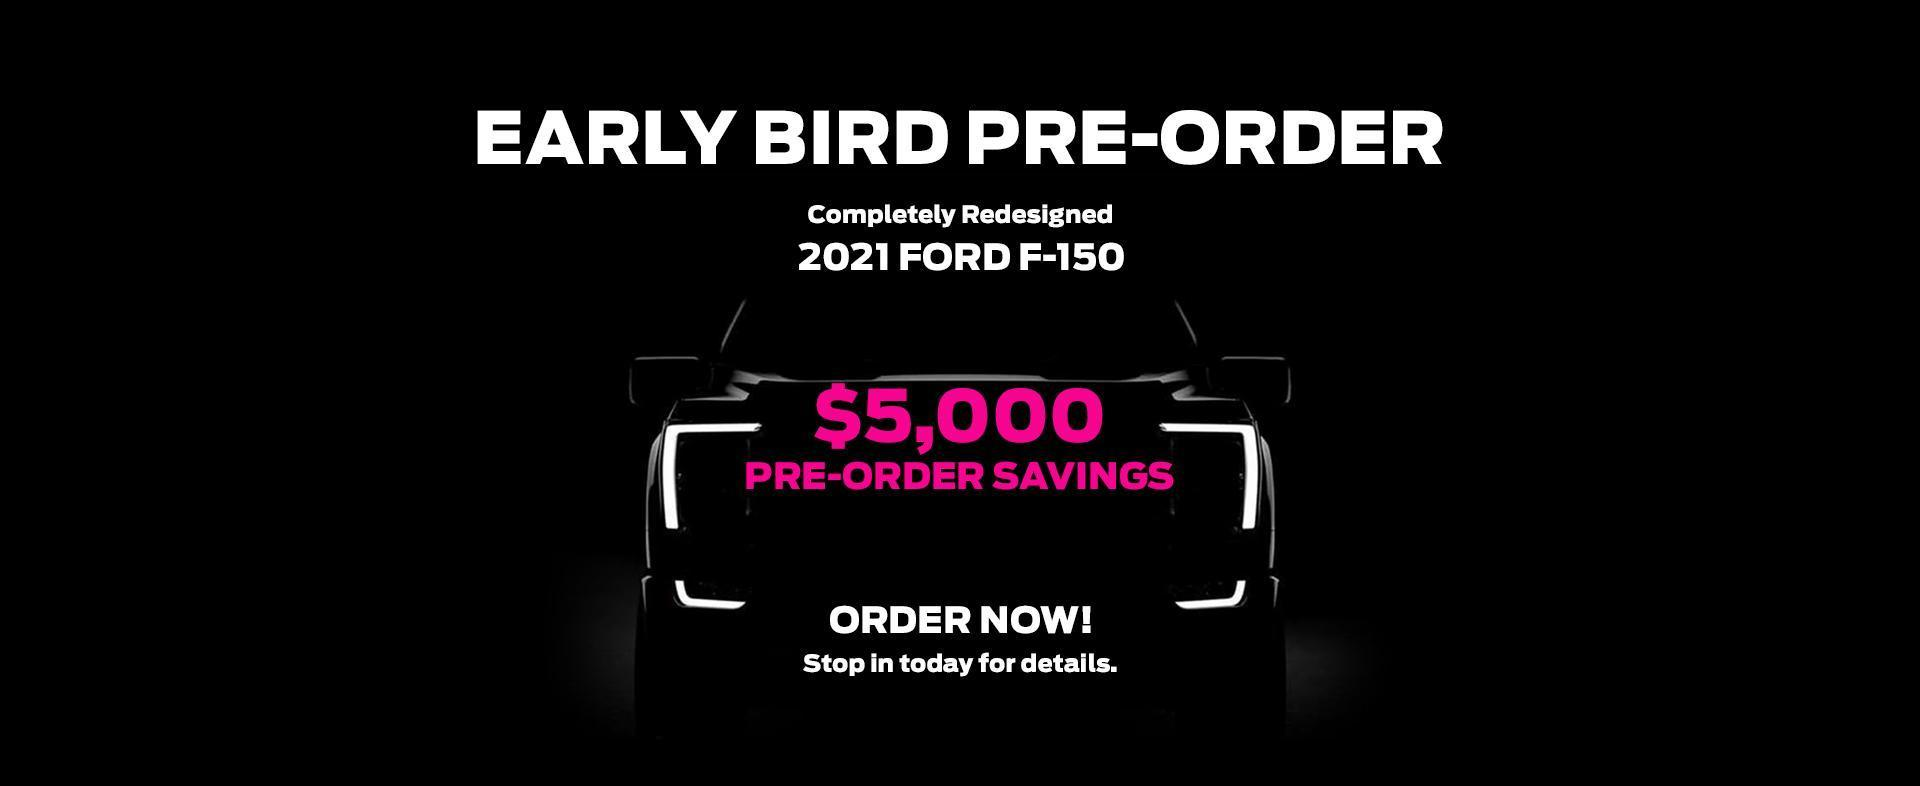 EARLY BIRD PRE-ORDER